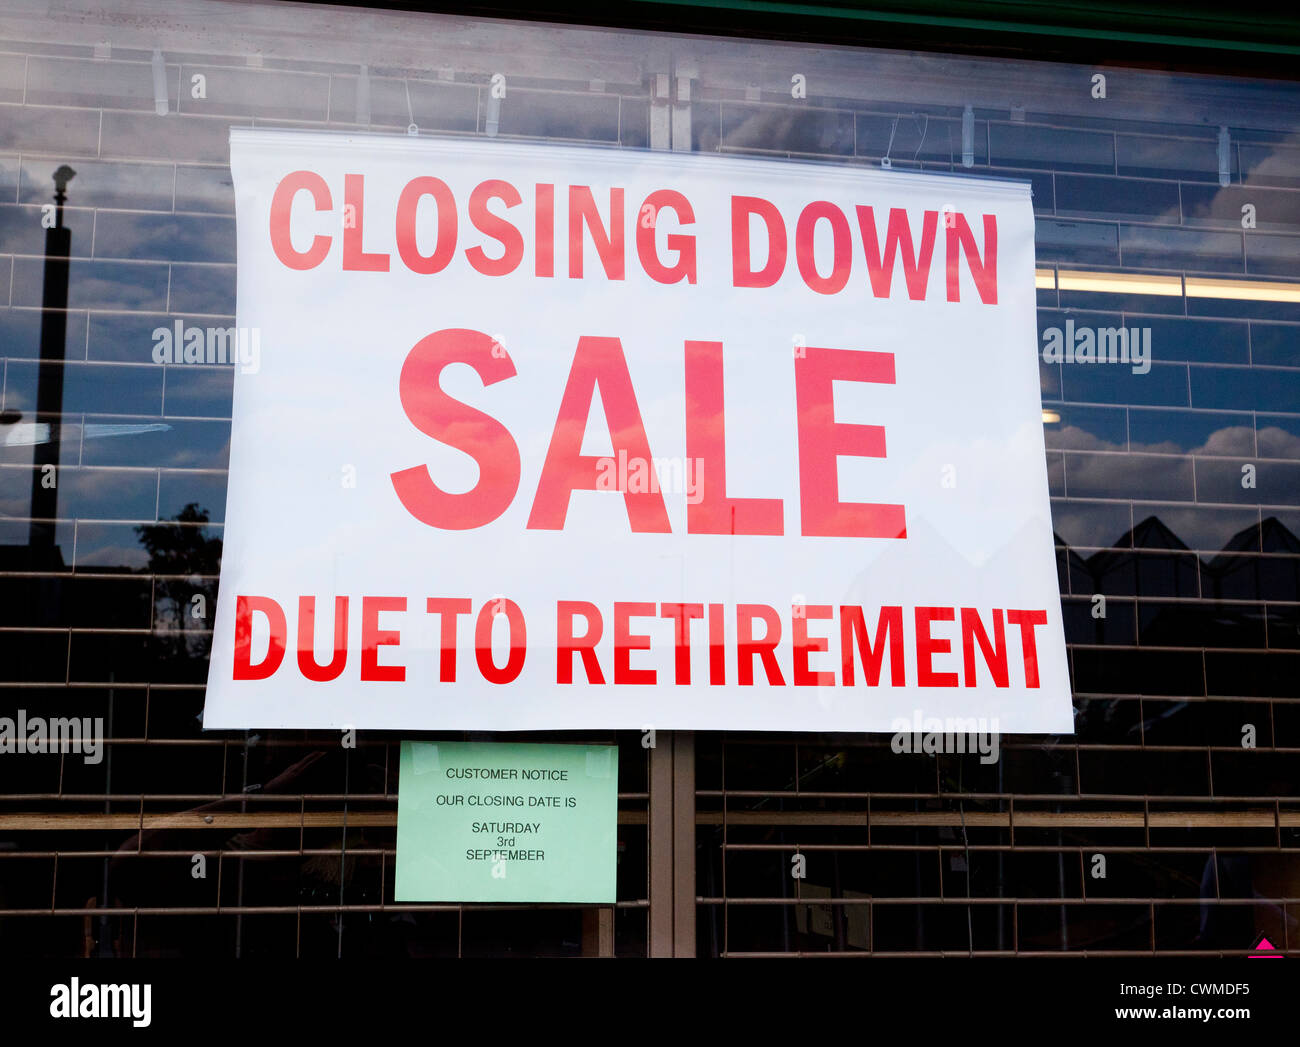 closing down sale sign - Stock Image